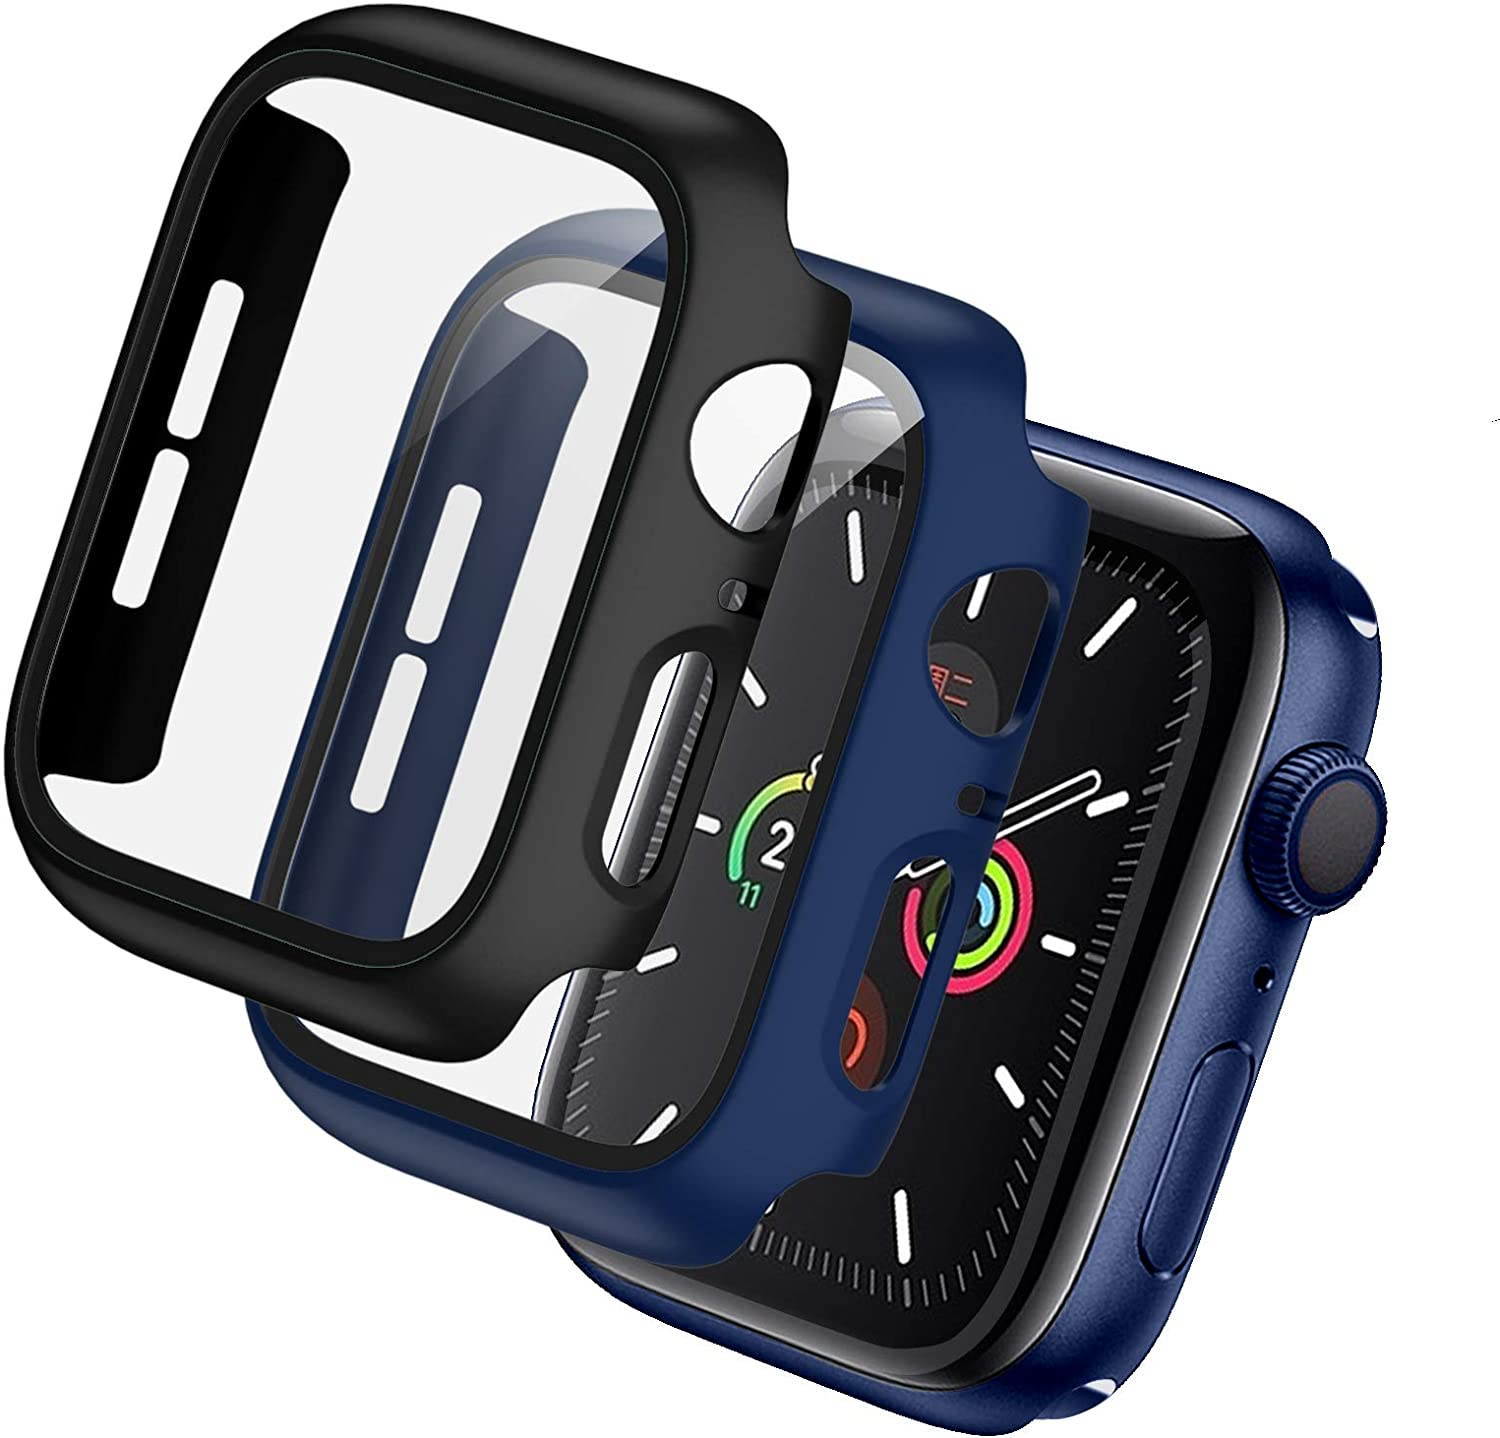 BHARVEST 2 Pack Hard PC Case Compatible with Apple Watch Series 3/2/1 38mm, Case with Tempered Glass Screen Protector Overall Bubble-Free Cover for iWatch Accessories, Black+Blue